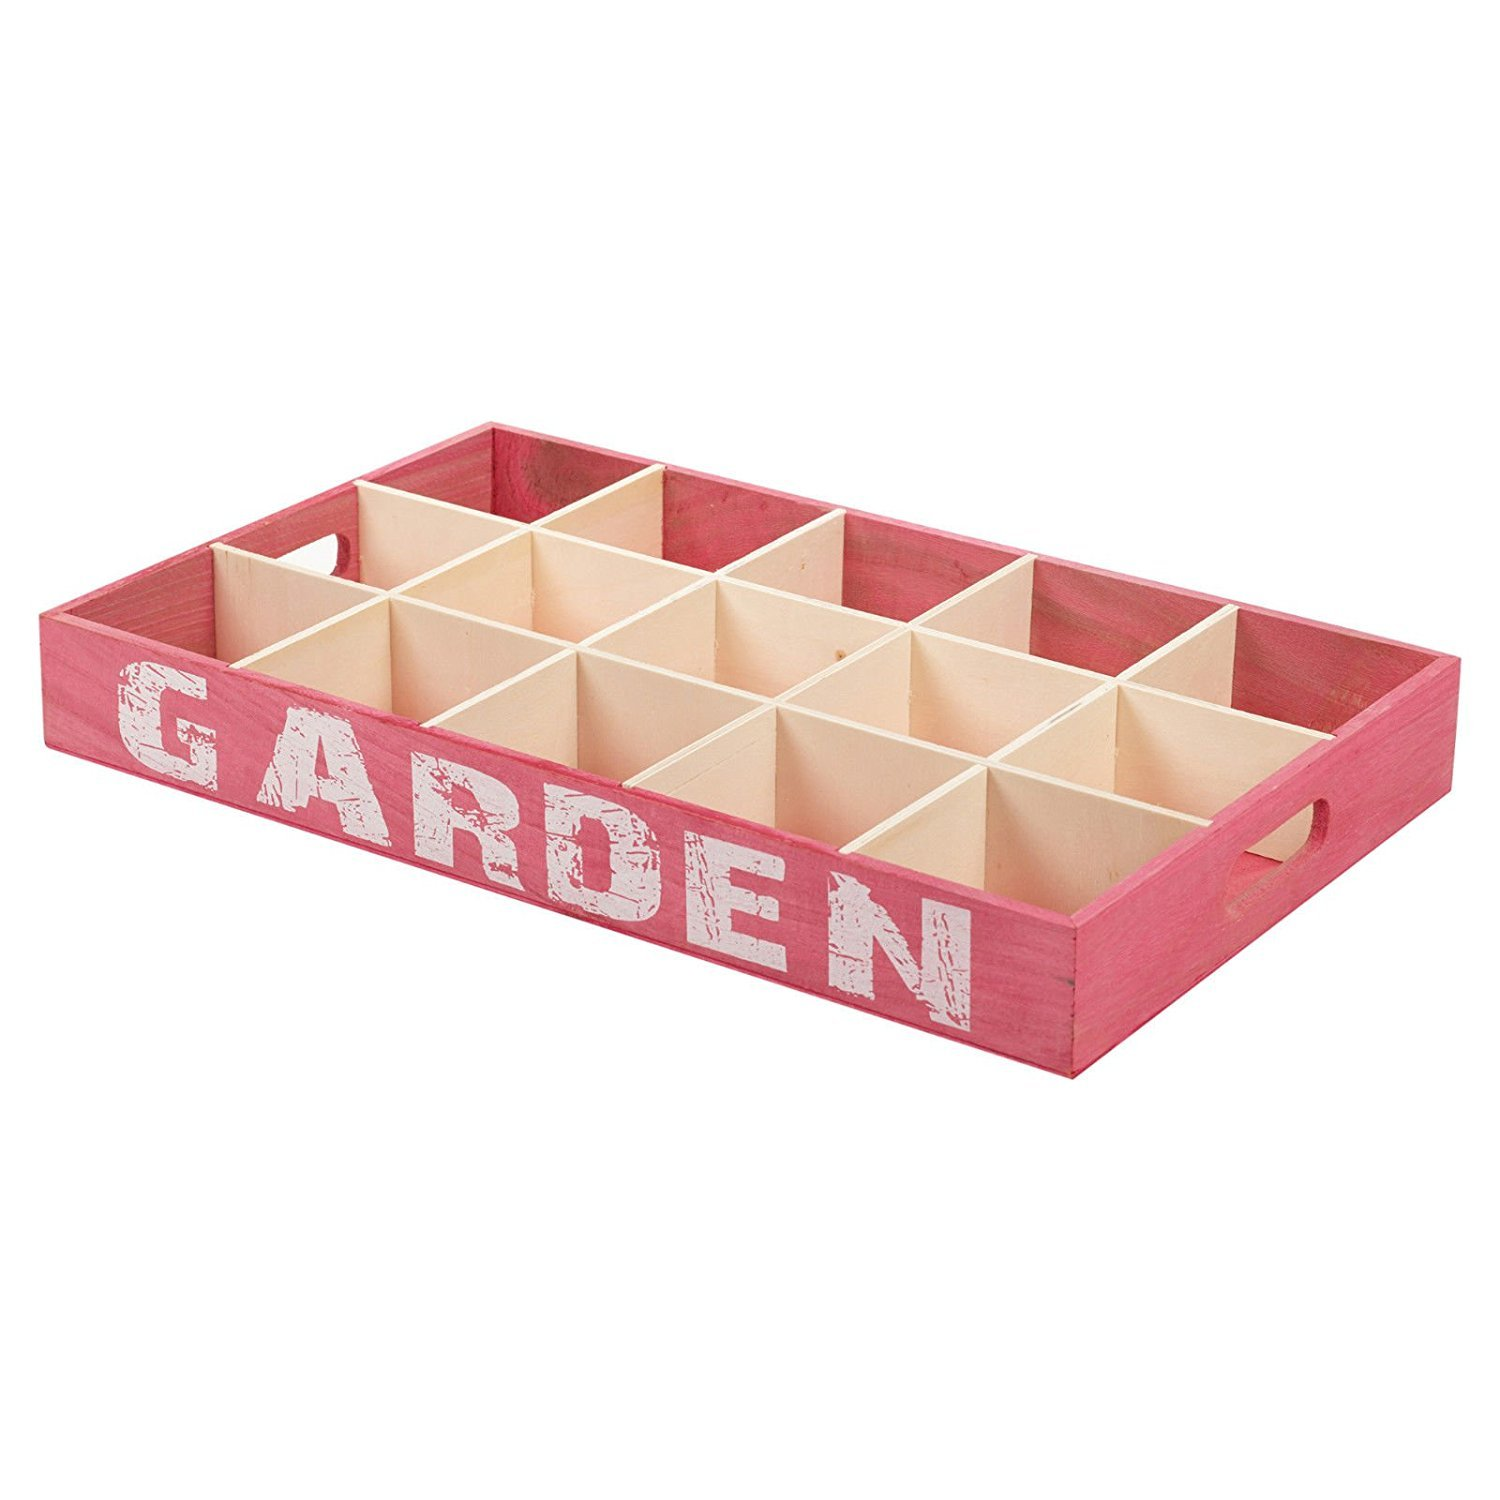 12 Compartment Wooden Germination Plant Pot Tray Flowers Herbs Plants Greenhouse Storage EGT UKASNHKTN7761